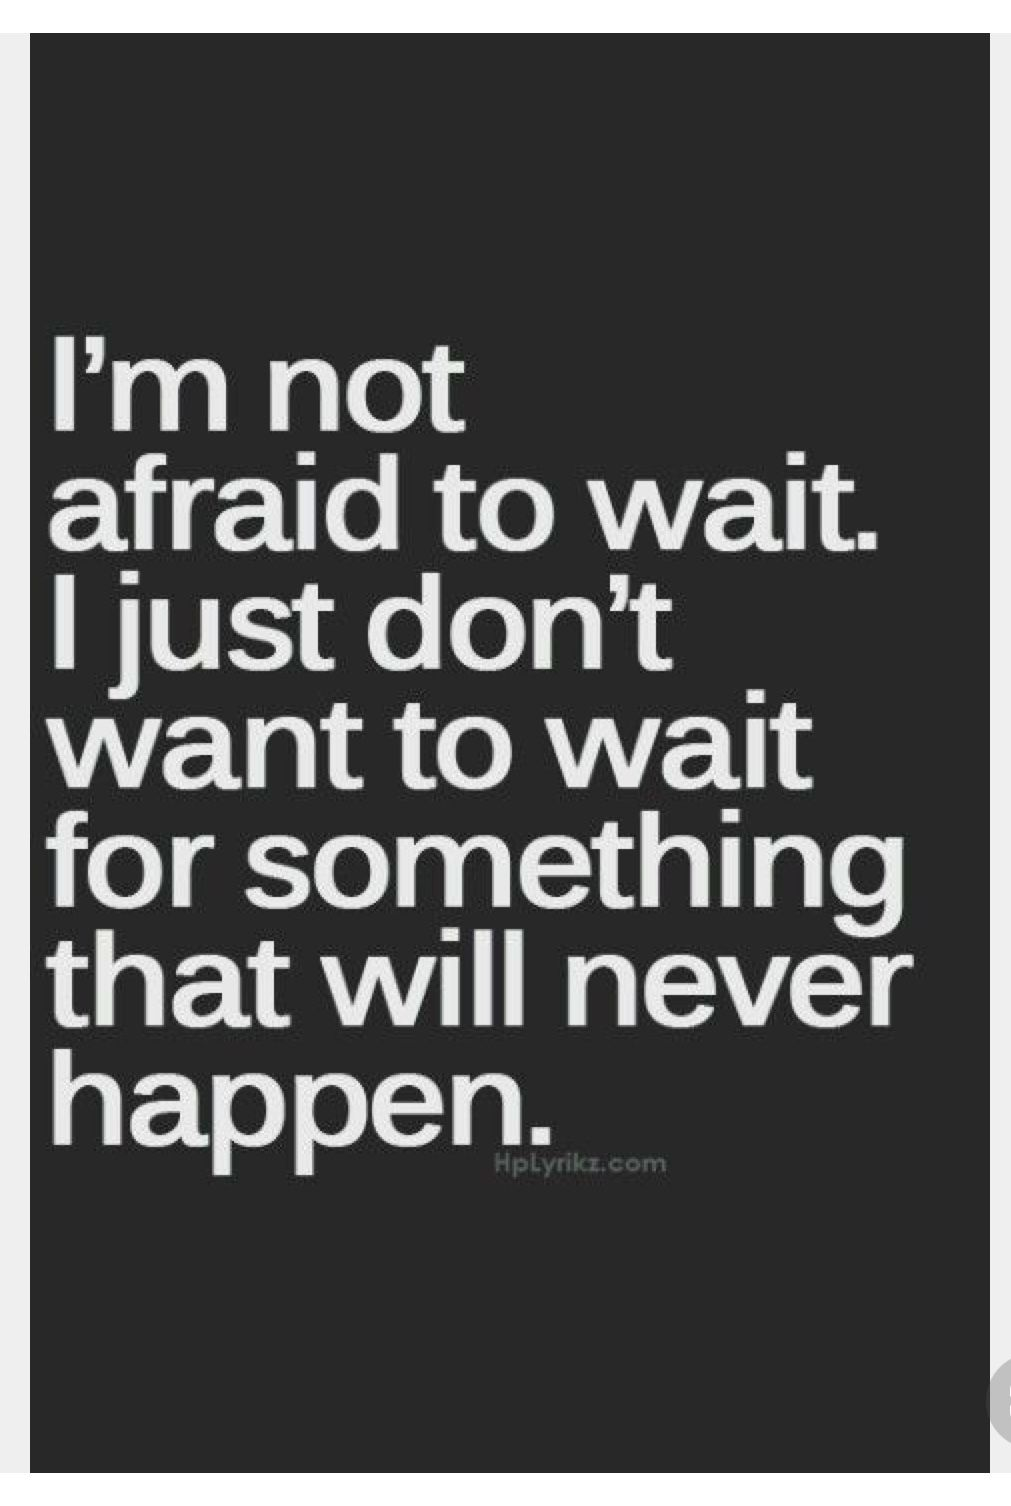 That is why you should not wait for love